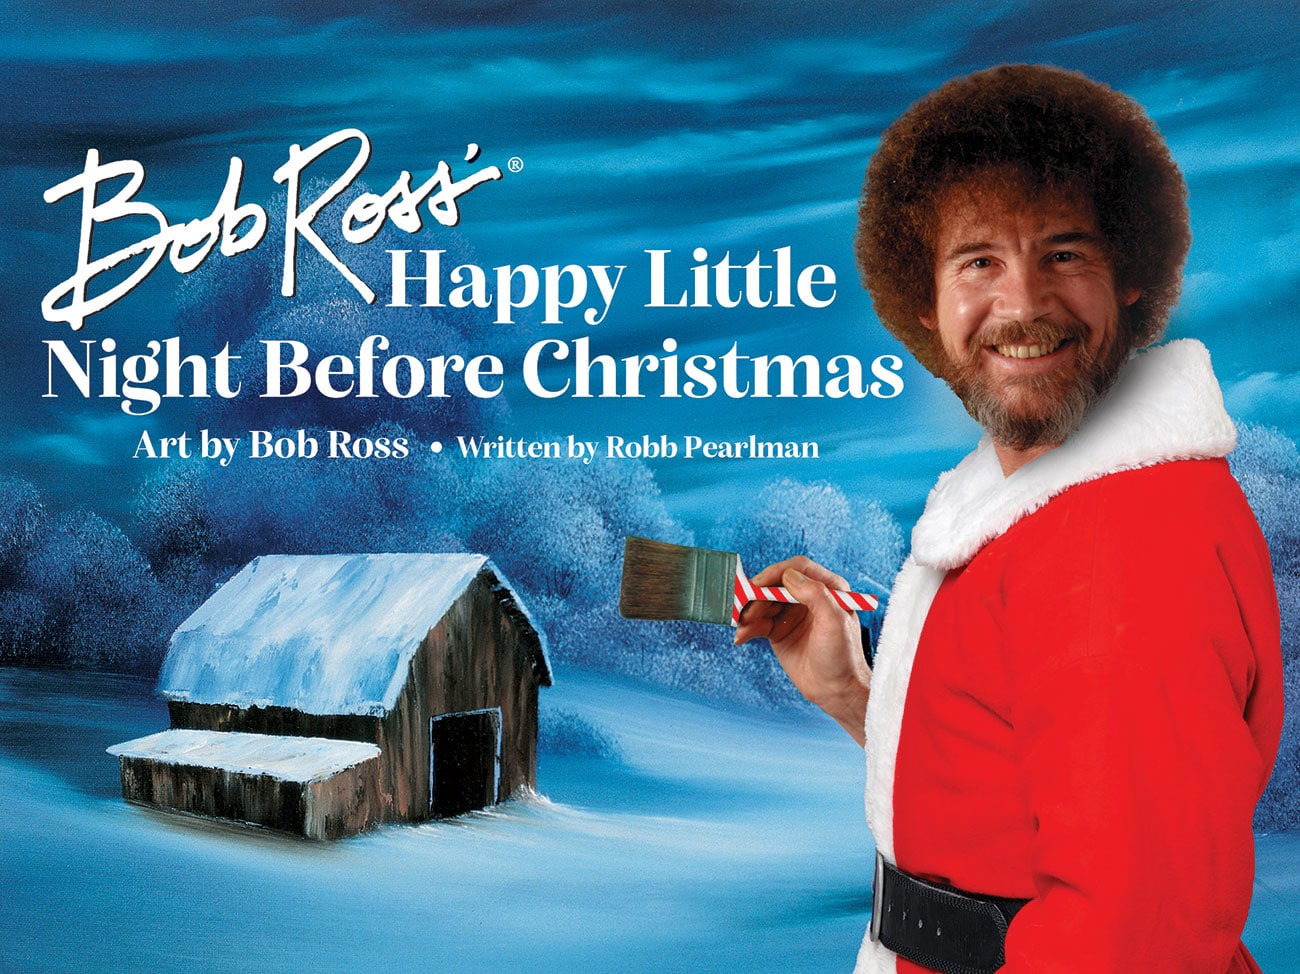 Bob Ross' Happy Little Night Before Christmas